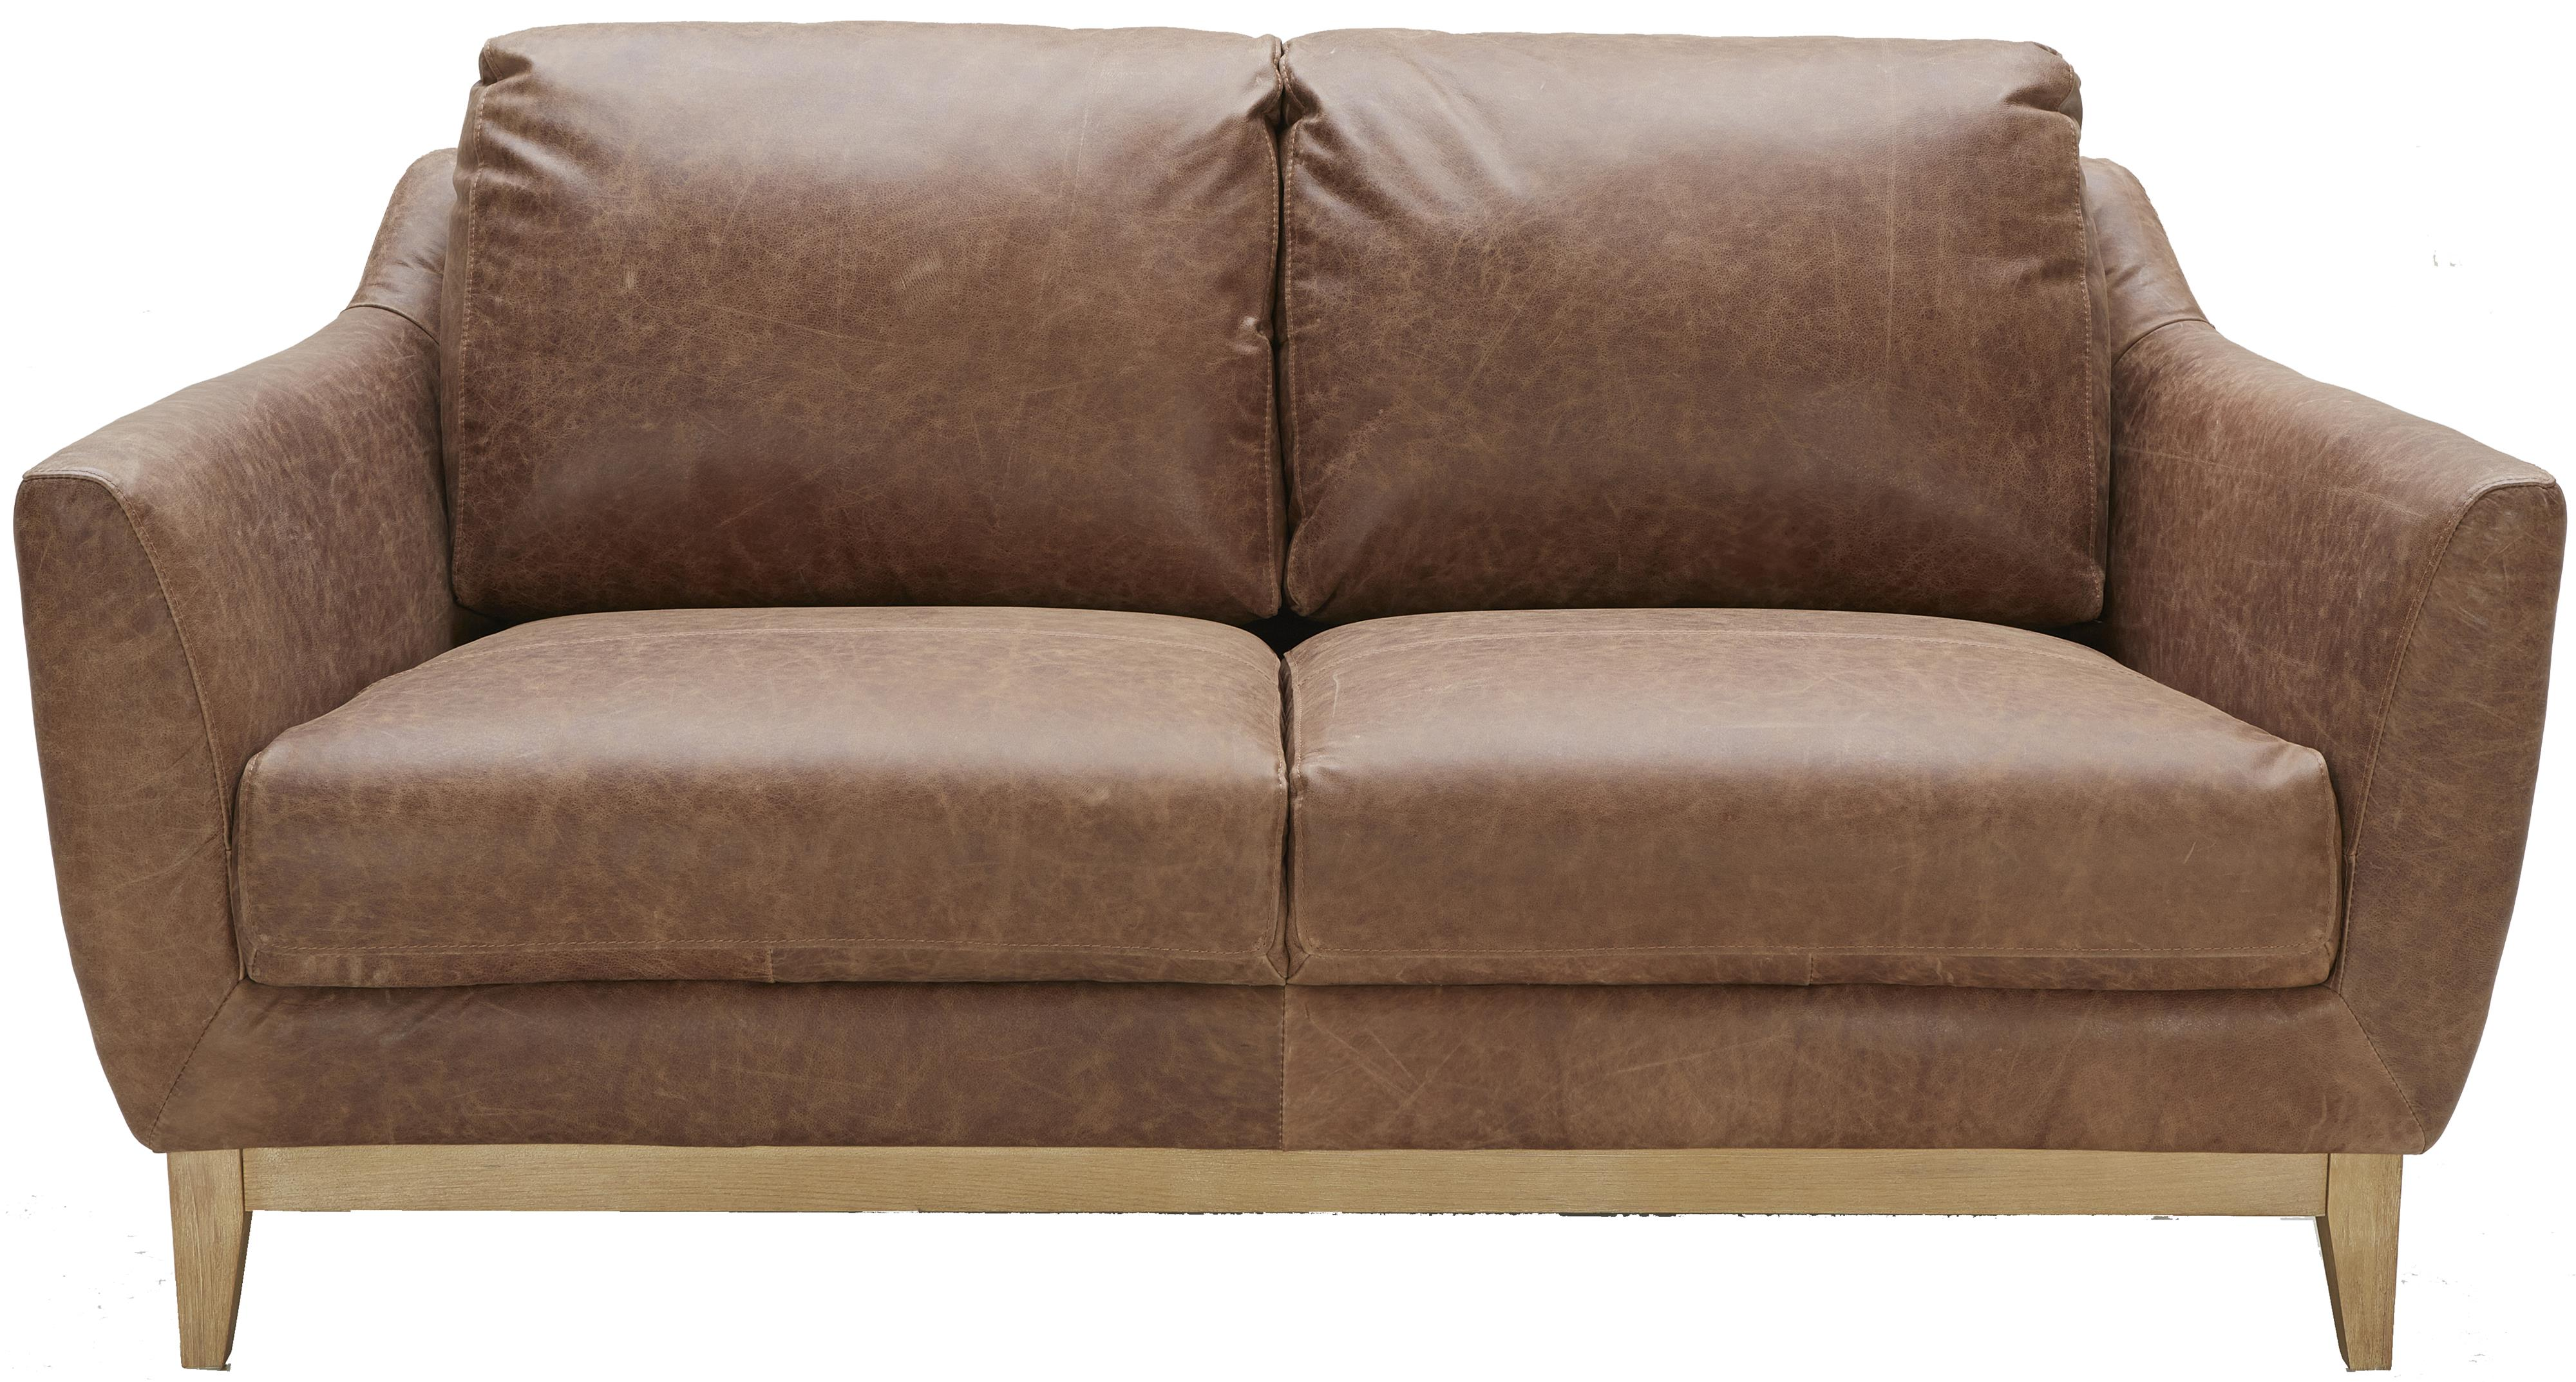 Urban Evolution Baker Loveseat - Item Number: 5179L-NL9303-G021